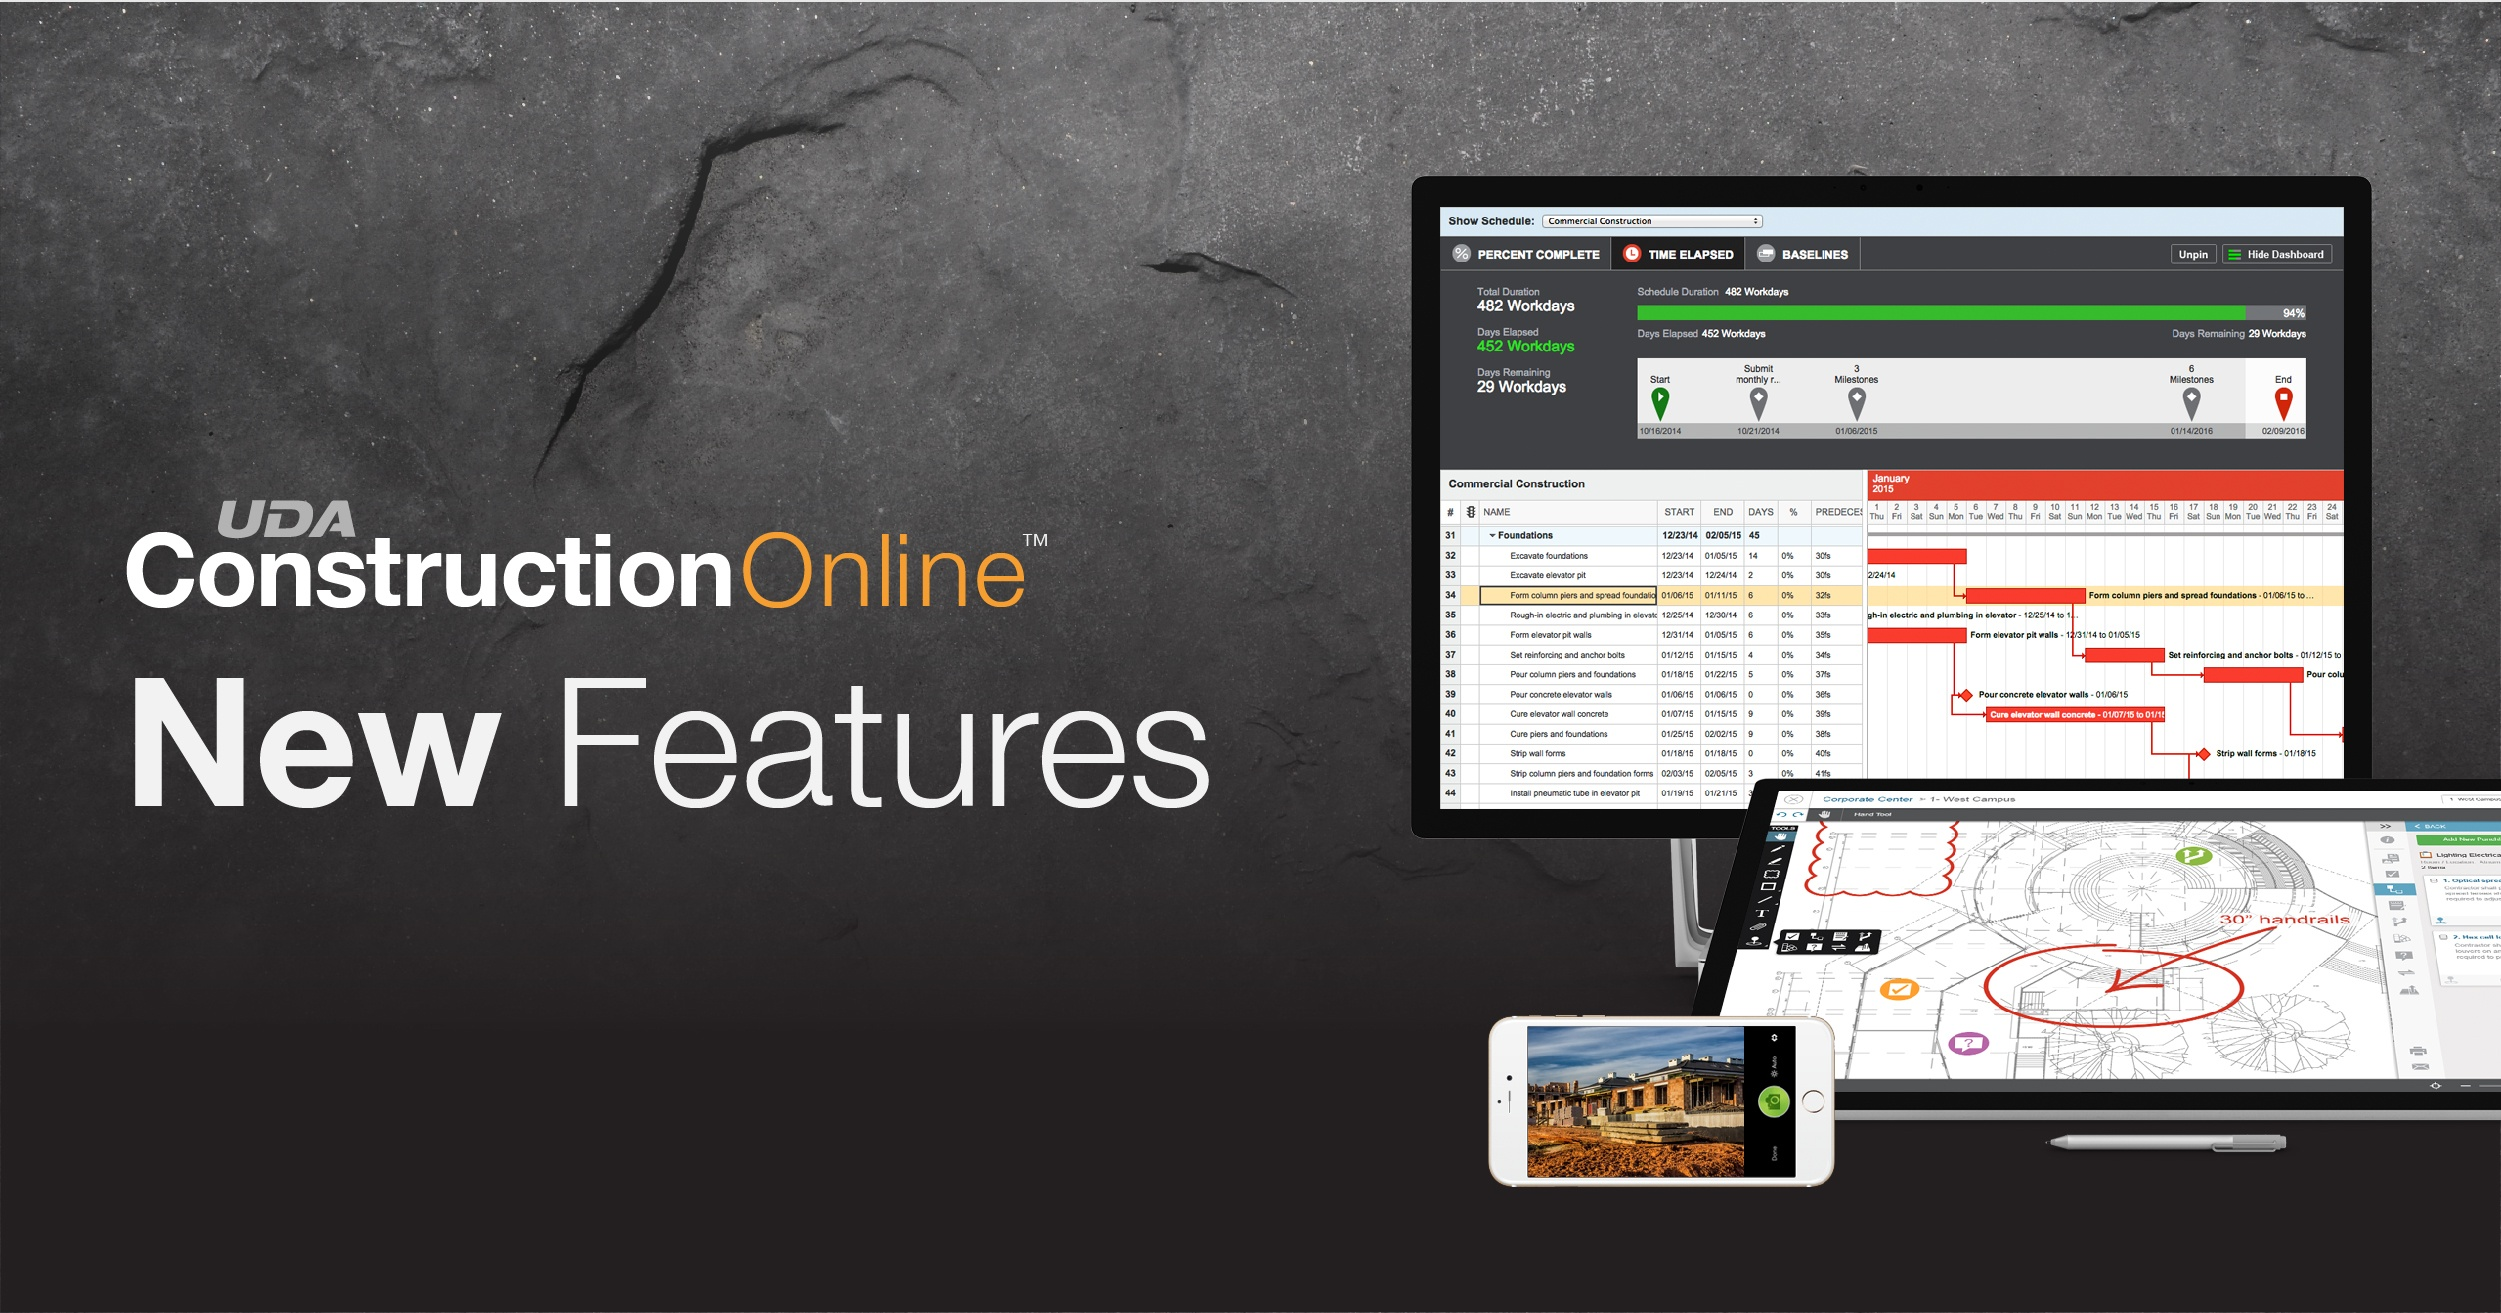 UDA Technologies Previews New Features Coming to ConstructionOnline